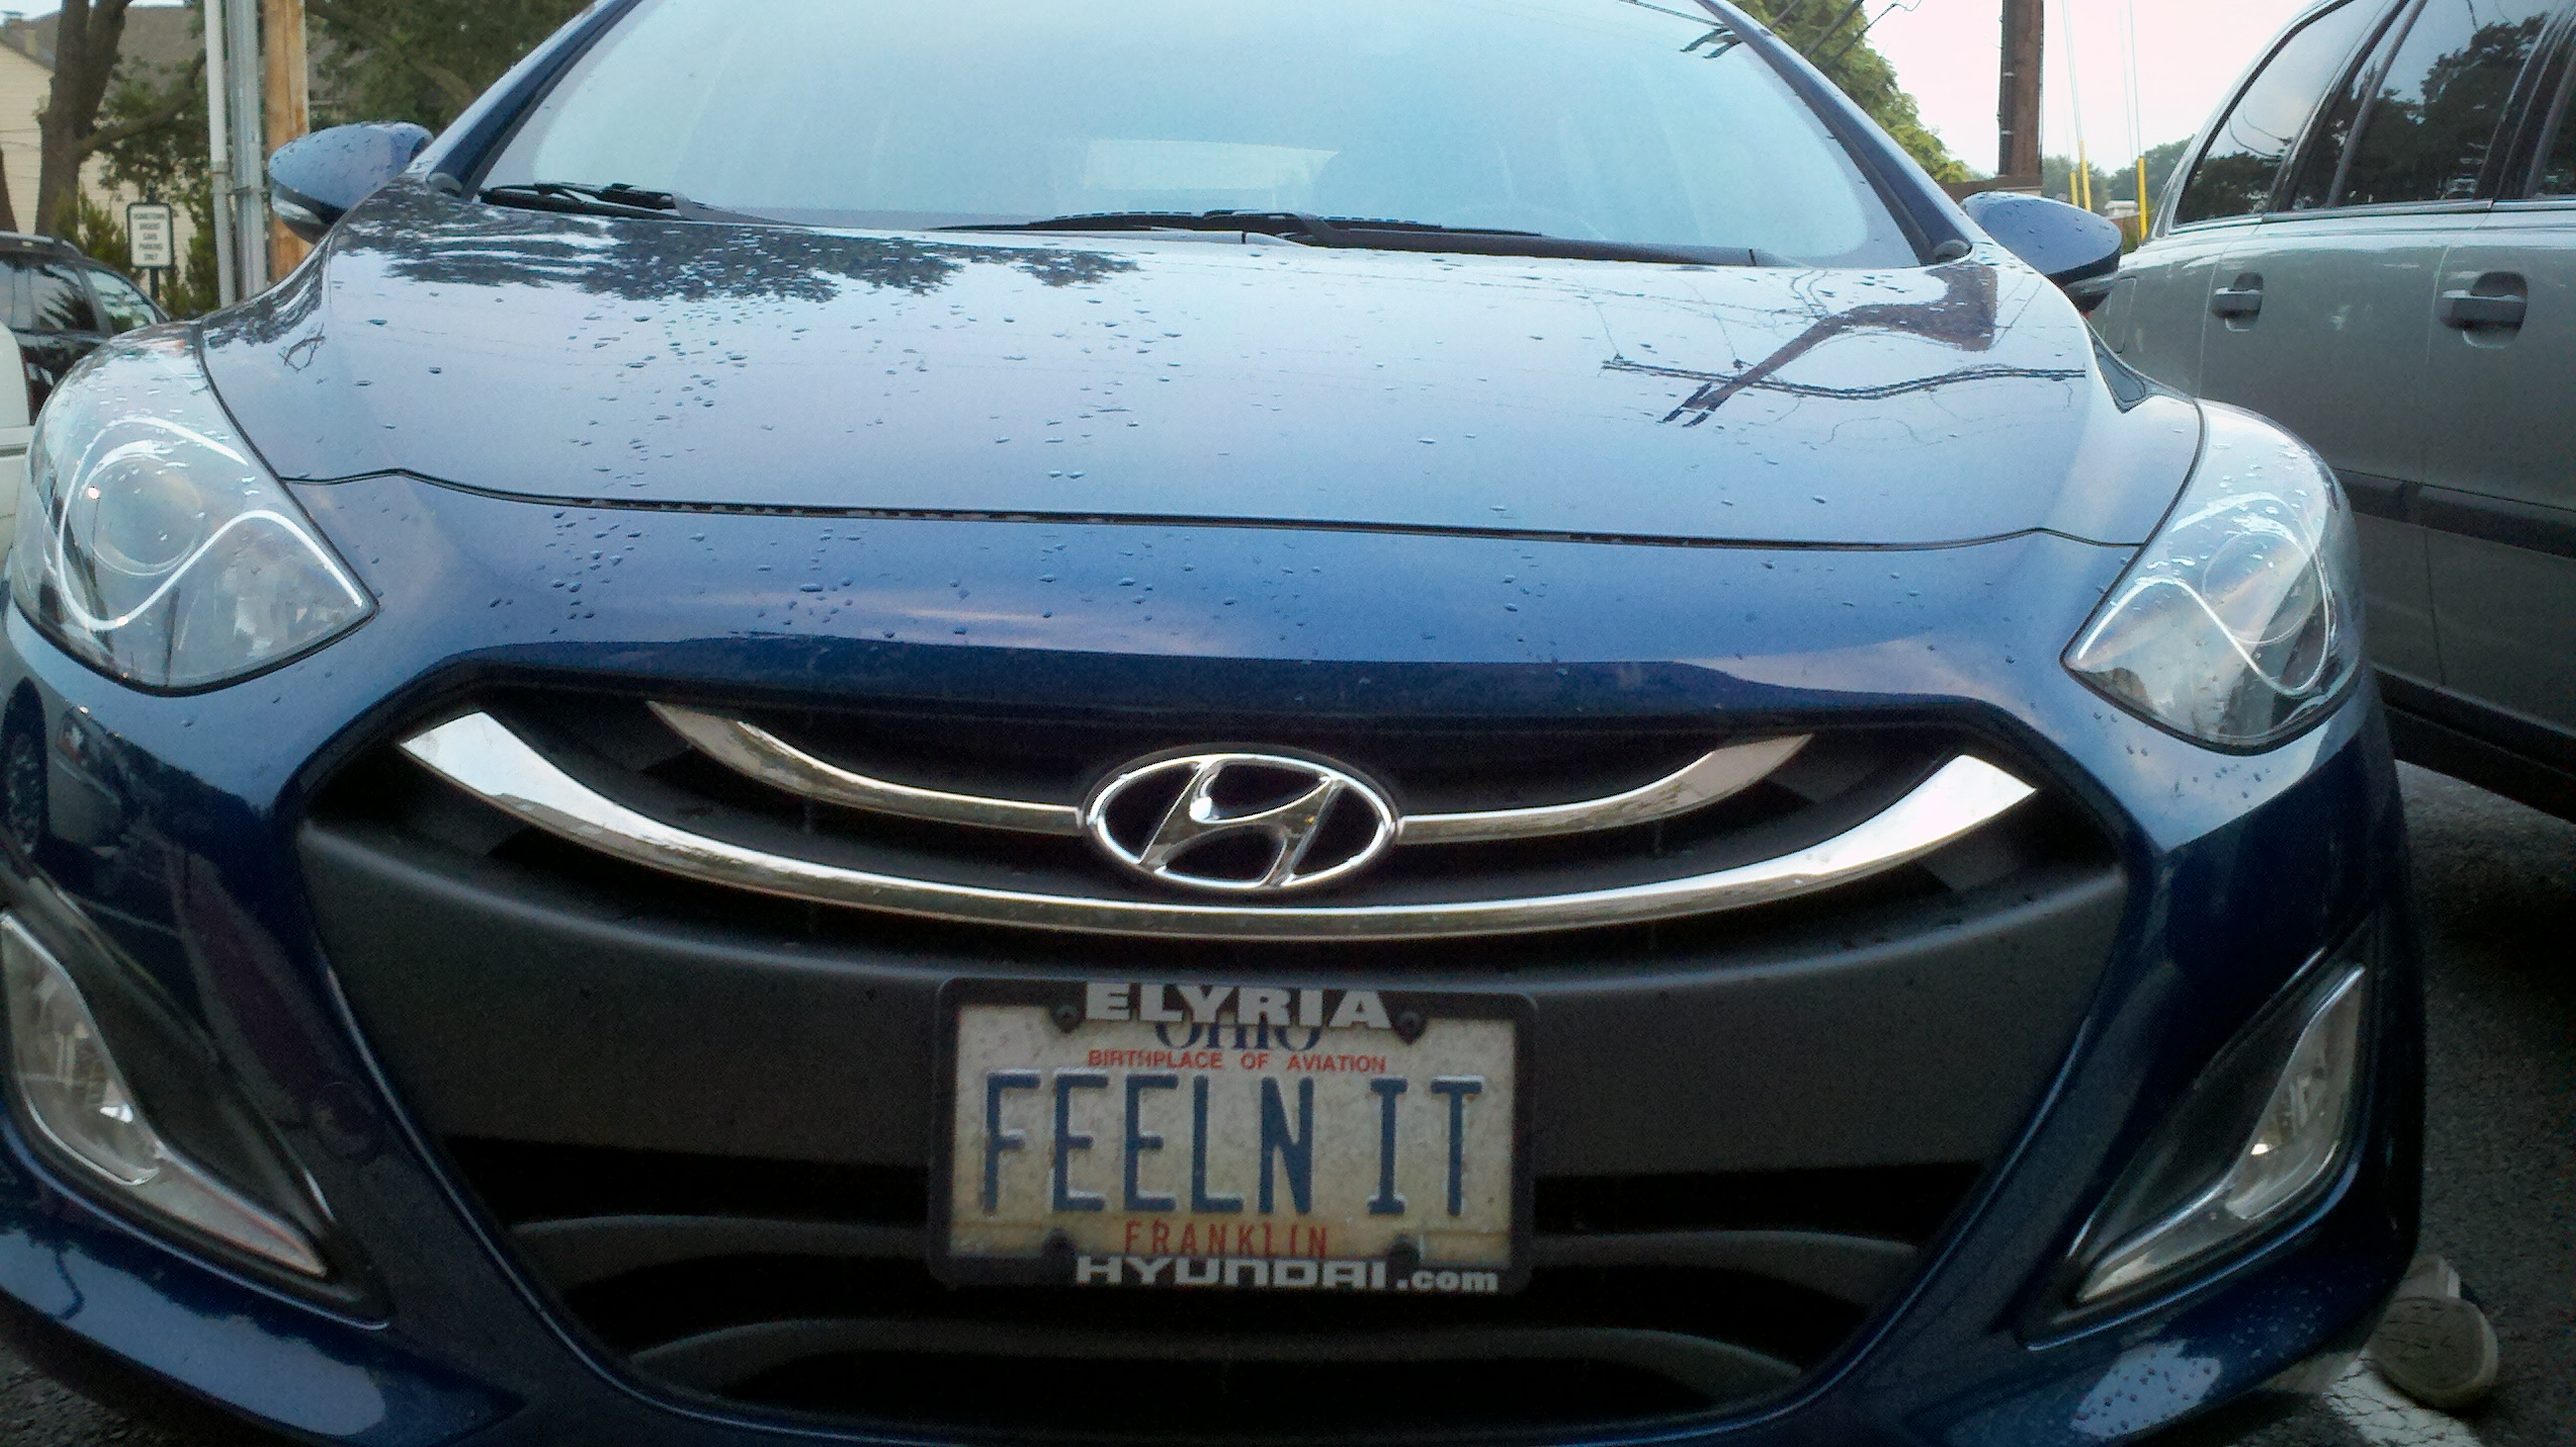 car with license plate that says FEELN IT